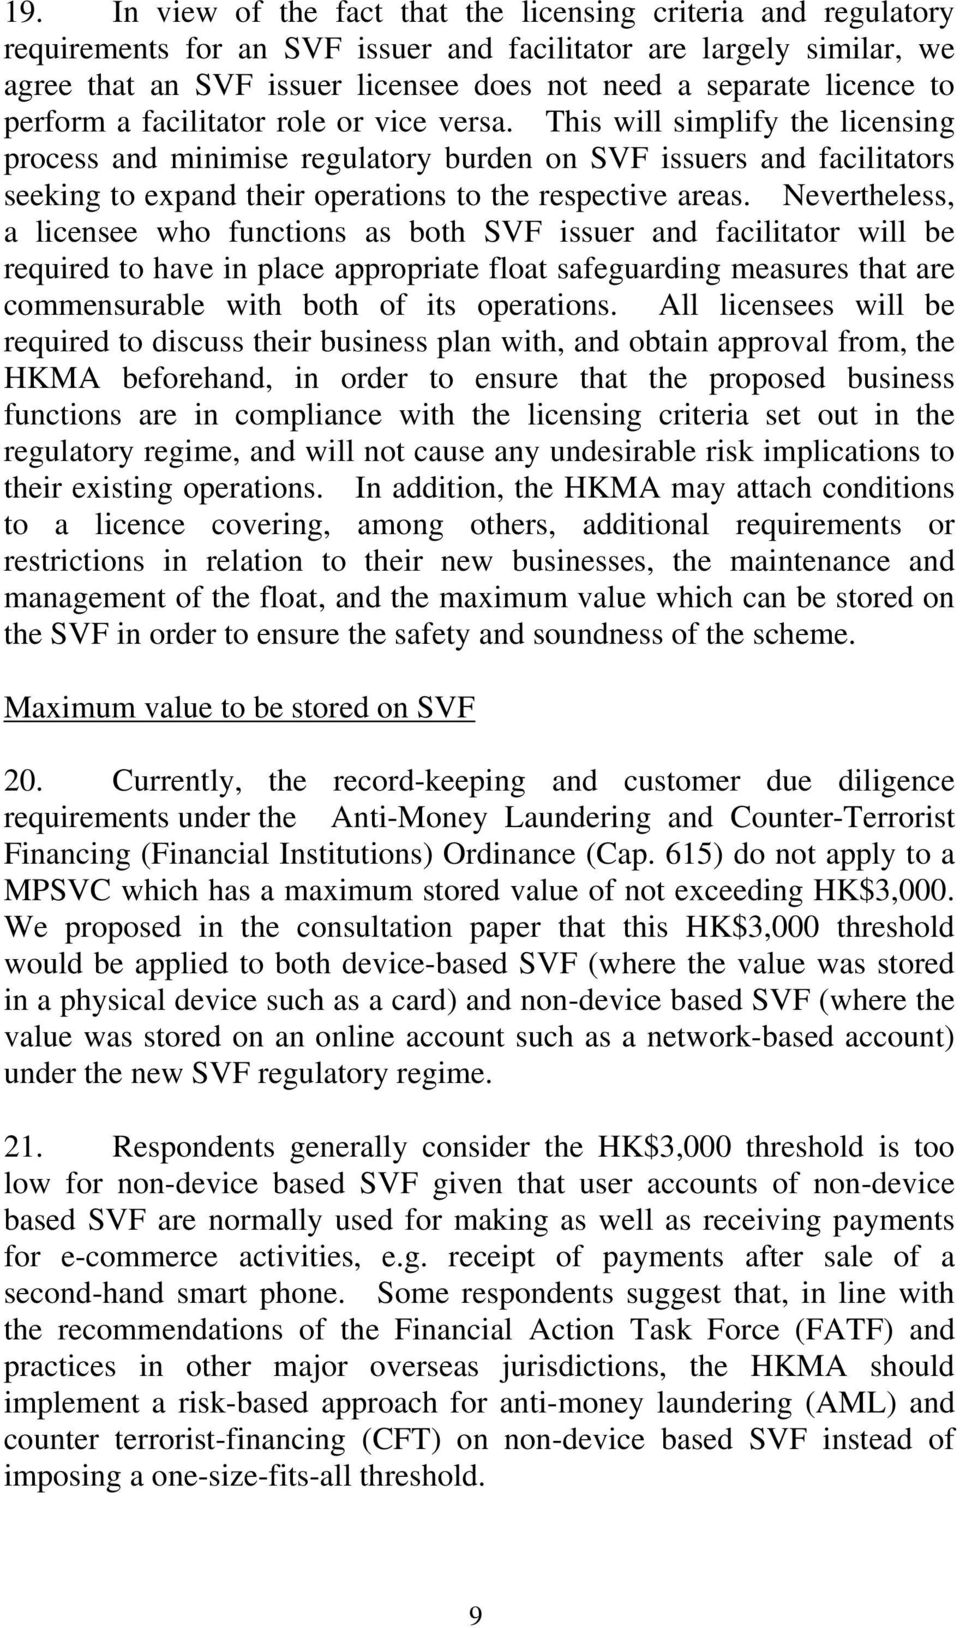 This will simplify the licensing process and minimise regulatory burden on SVF issuers and facilitators seeking to expand their operations to the respective areas.